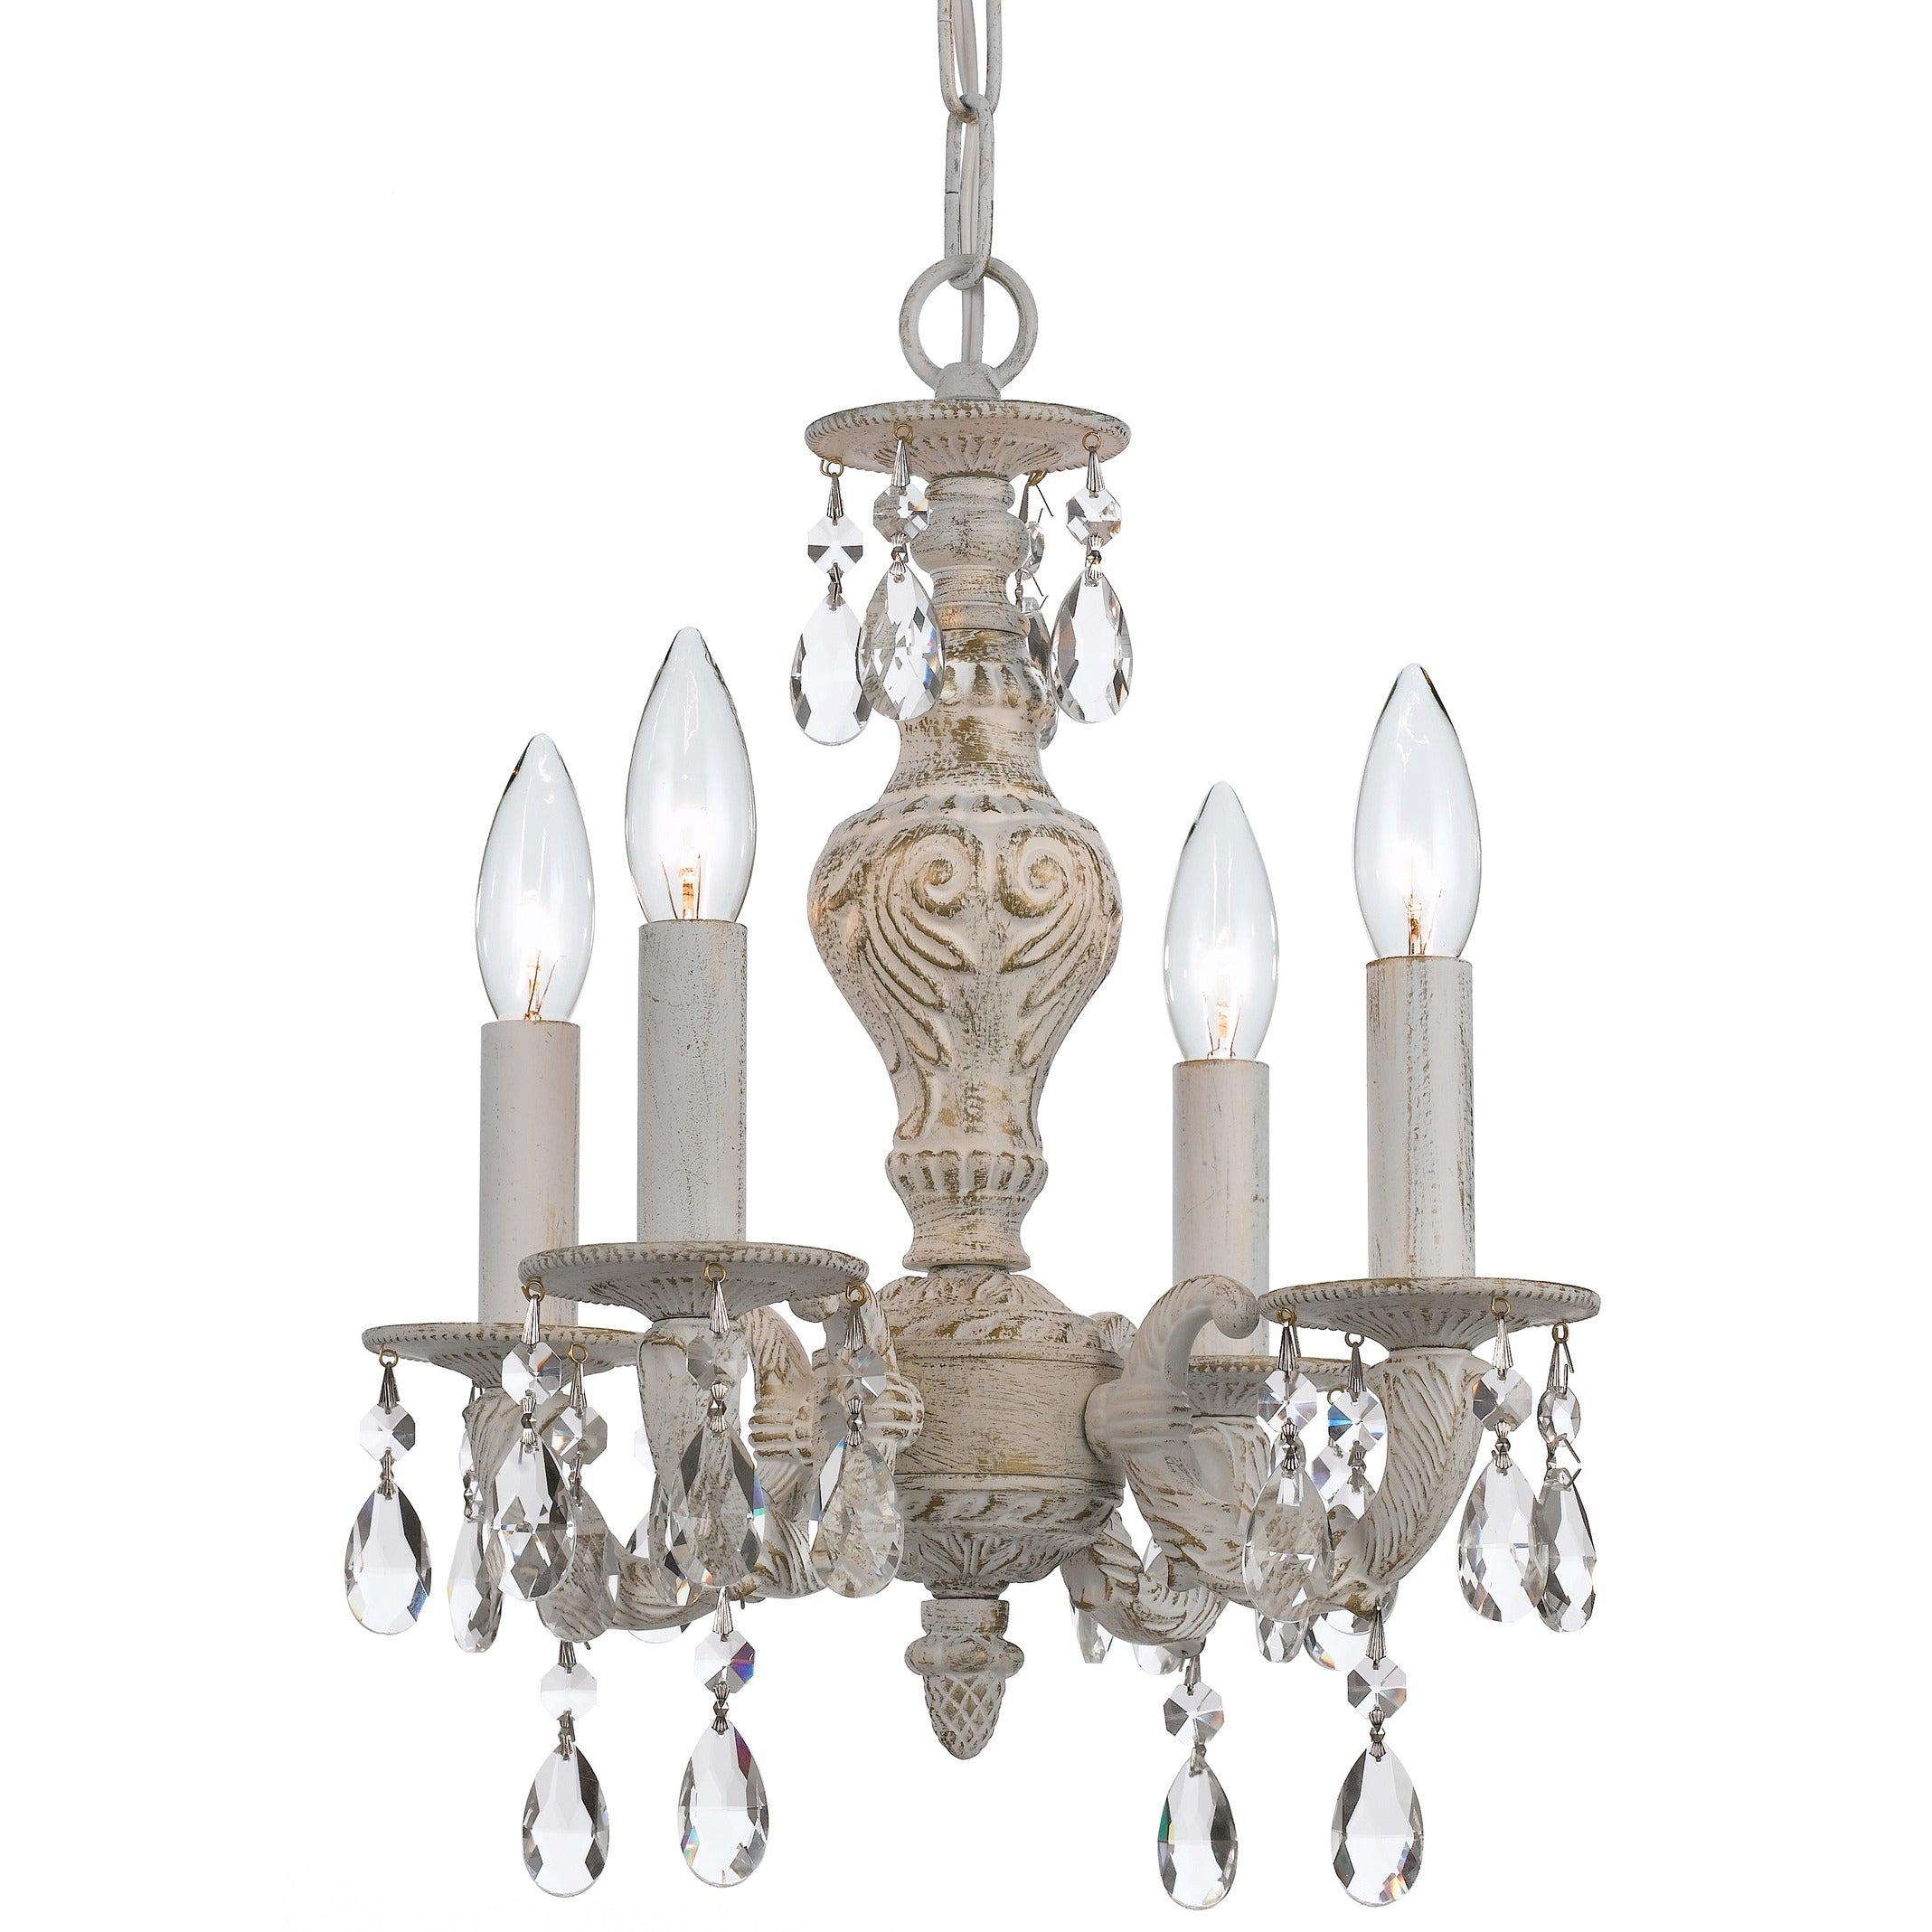 Crystorama Sutton Collection 4 light Antique White Chandelier